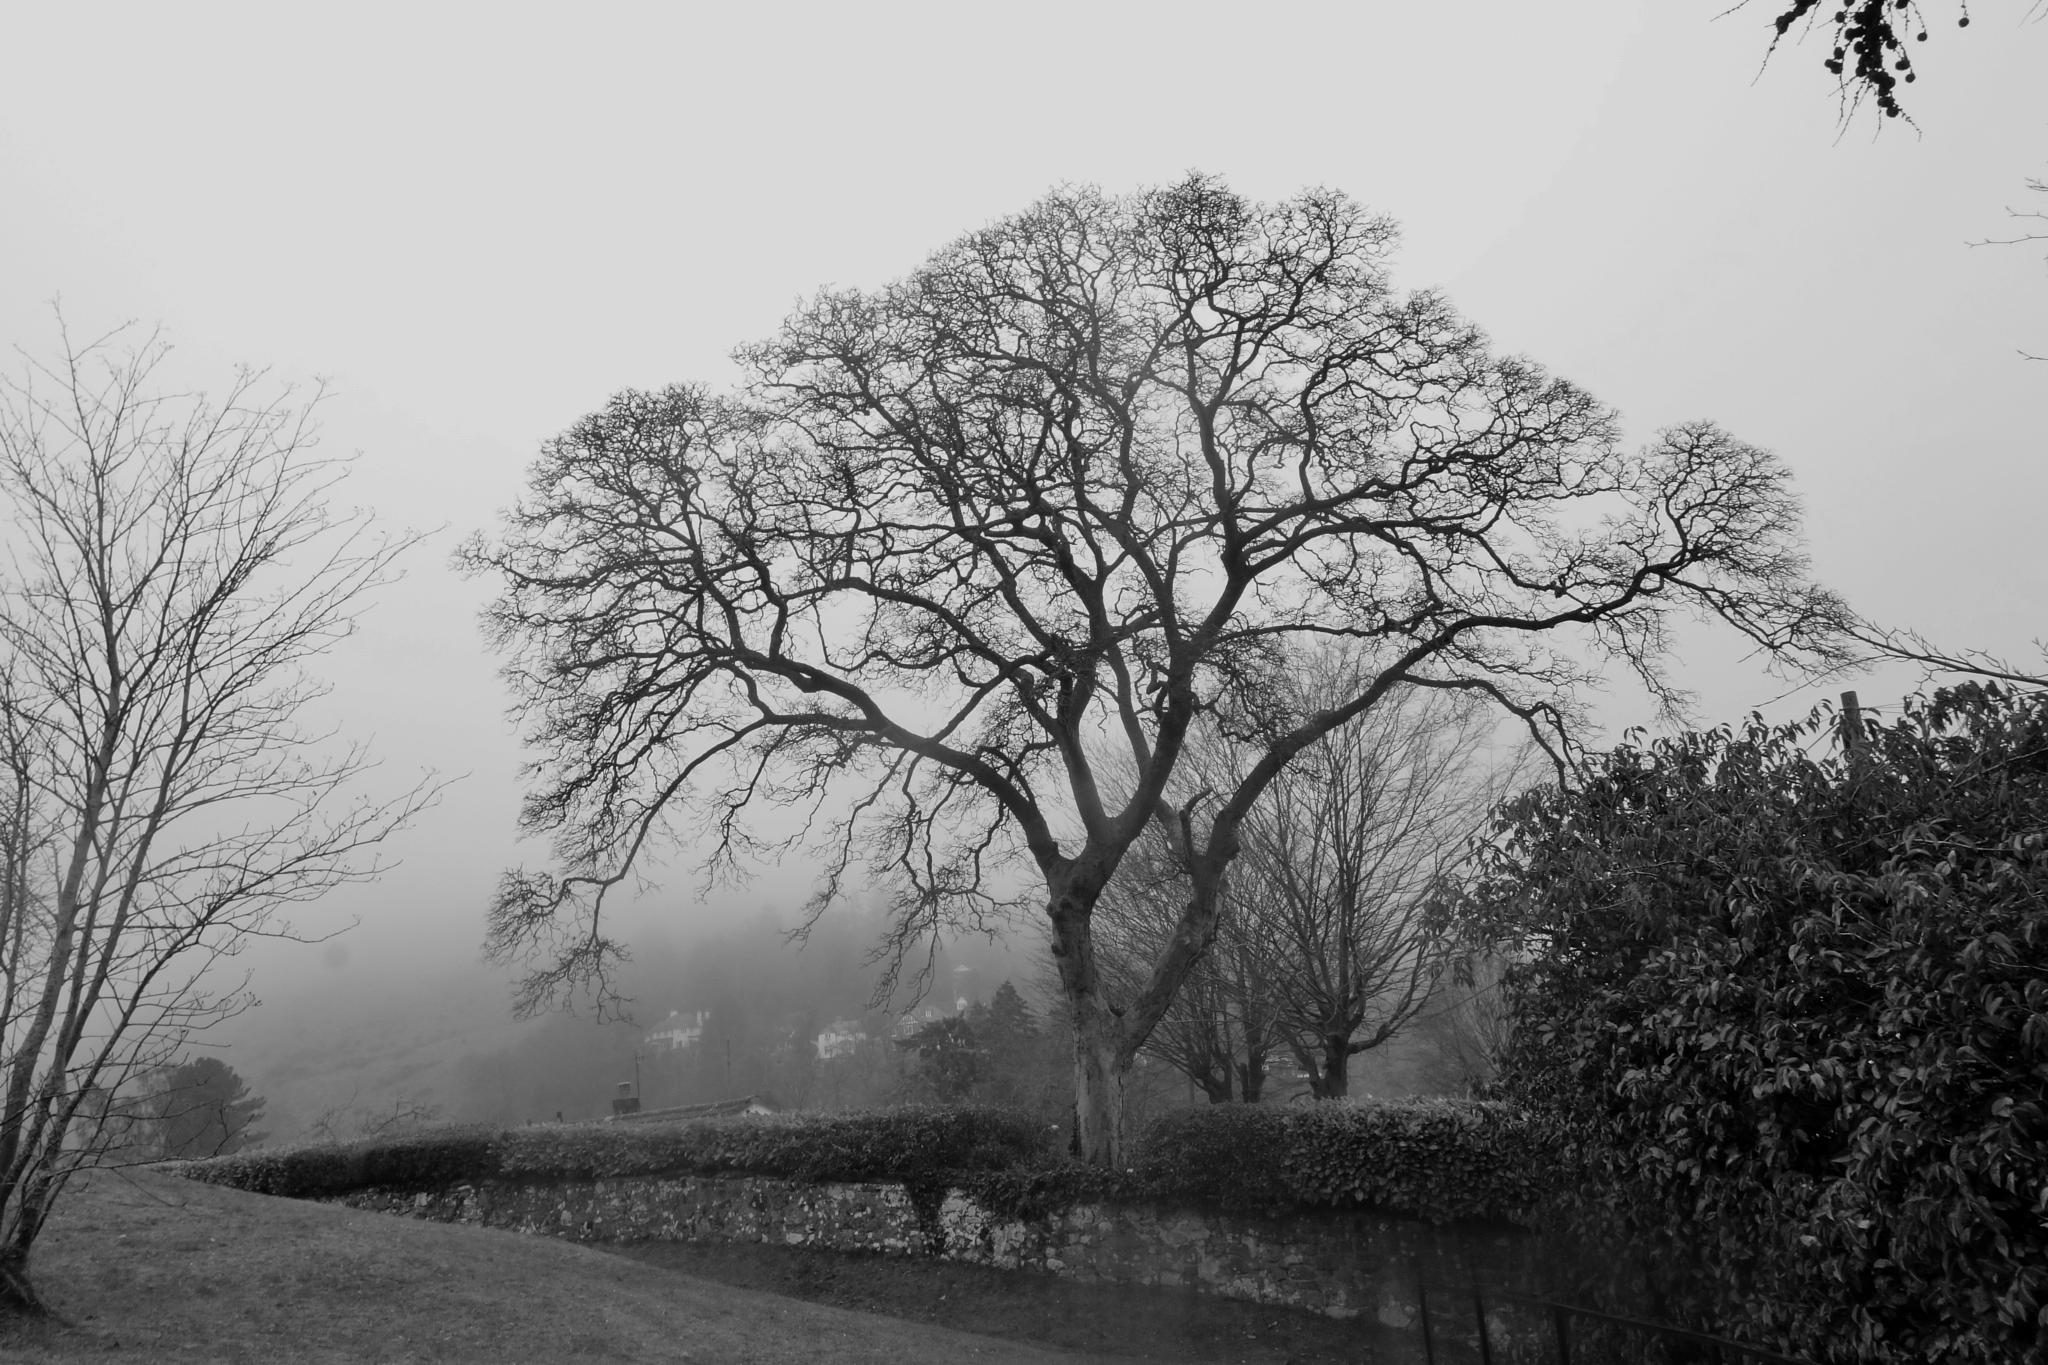 Tree in the fog by RonKelly